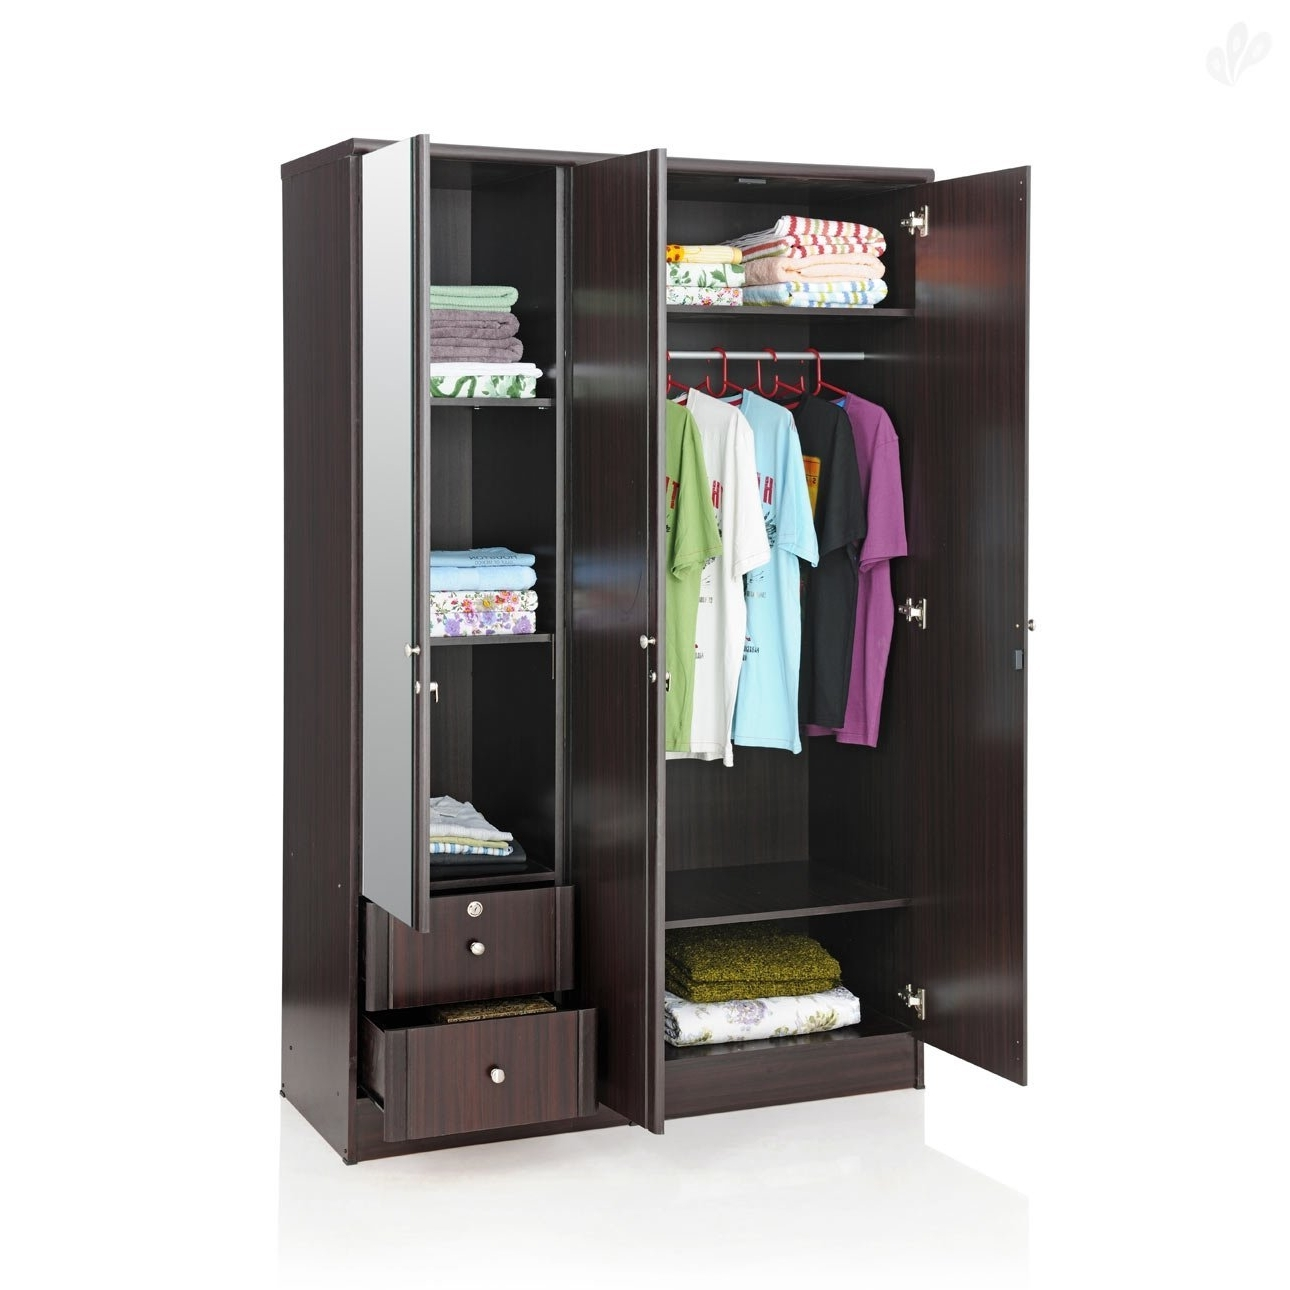 Widely Used Three Door Wardrobes With Mirror Intended For Royal Oak Berlin Three Door Wardrobe With Mirror (Brown): Amazon (View 15 of 15)